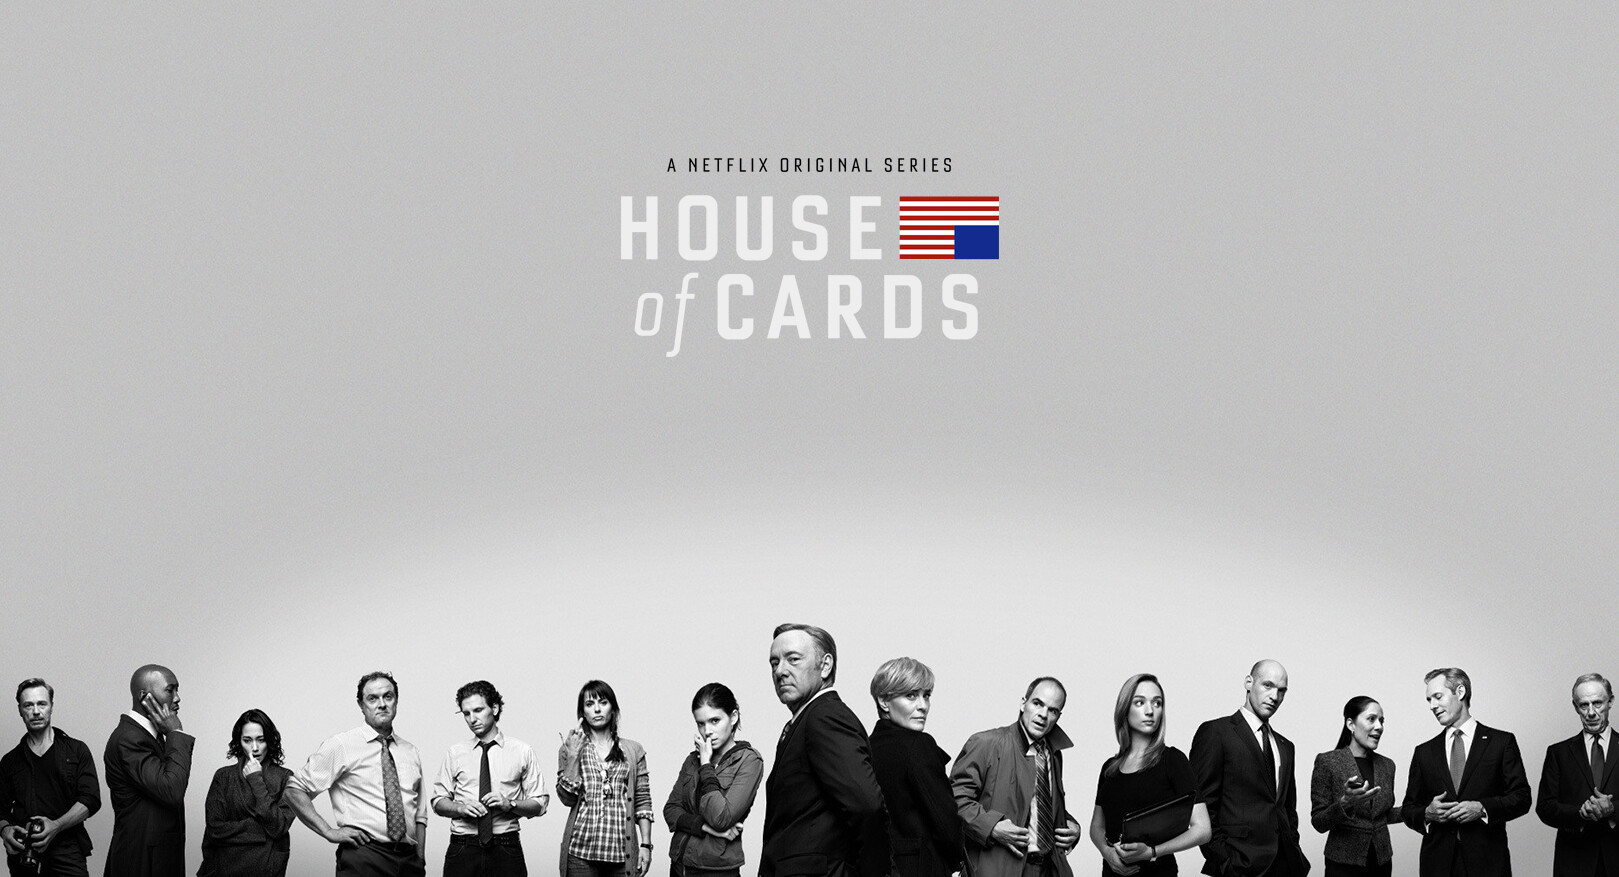 House of Cards commercial-free